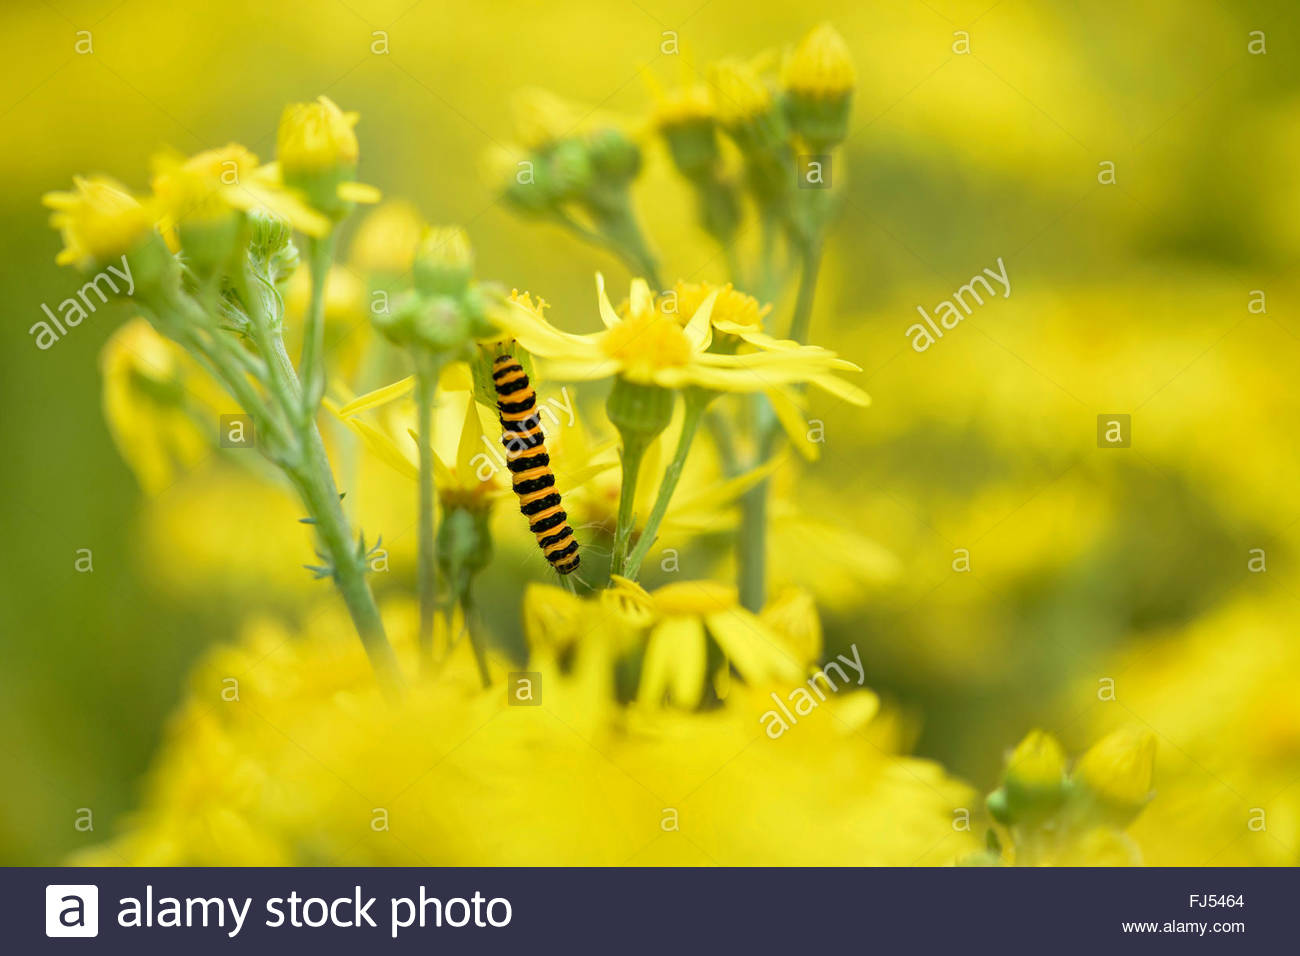 black and yellow moth stockfotos black and yellow moth bilder alamy. Black Bedroom Furniture Sets. Home Design Ideas